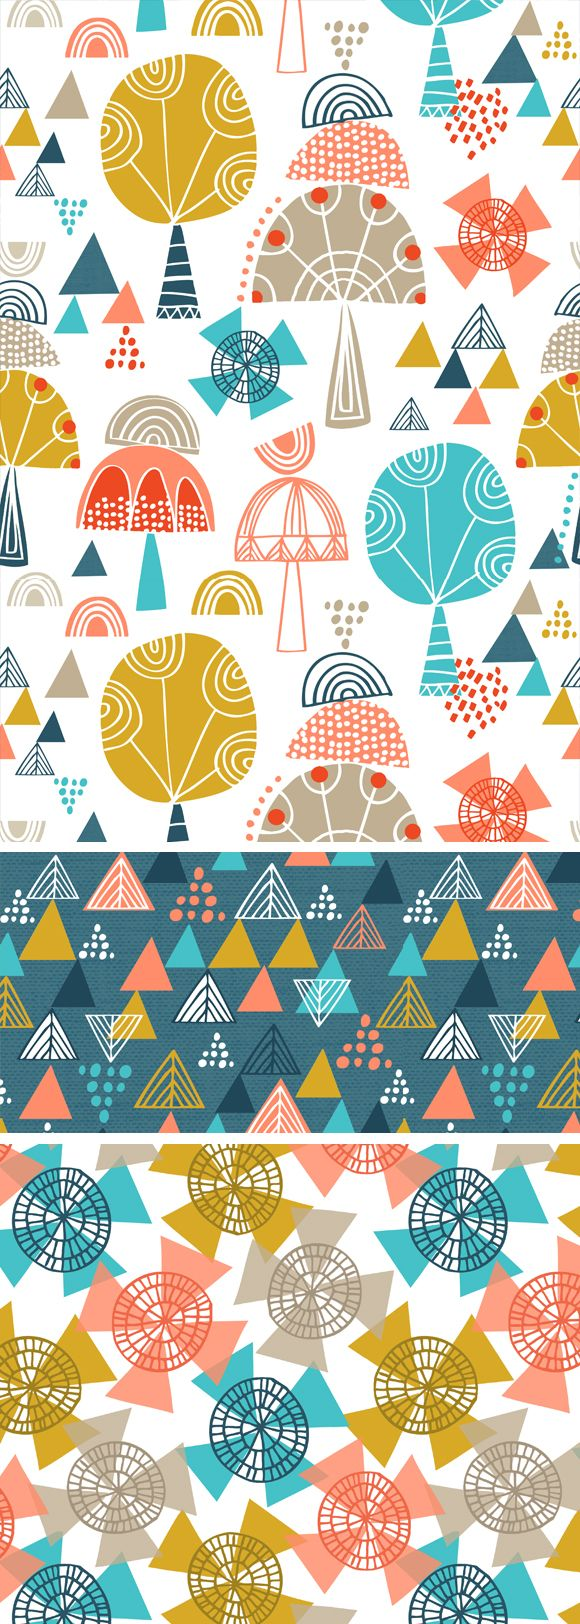 wendy kendall designs – freelance surface pattern designer » totem trees